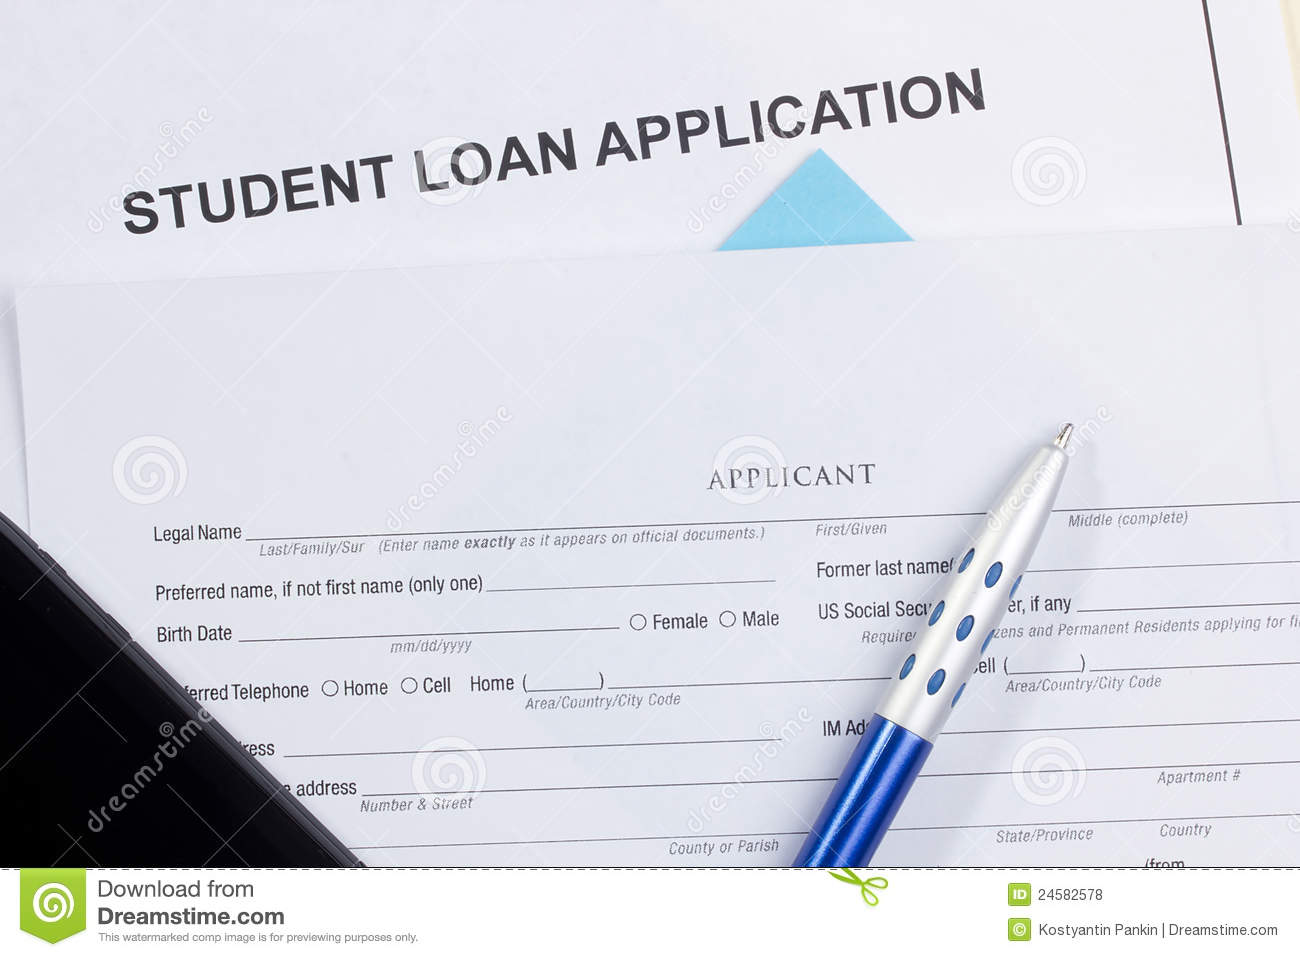 Student Loan Application Royalty Free Stock Photos - Image: 24582578